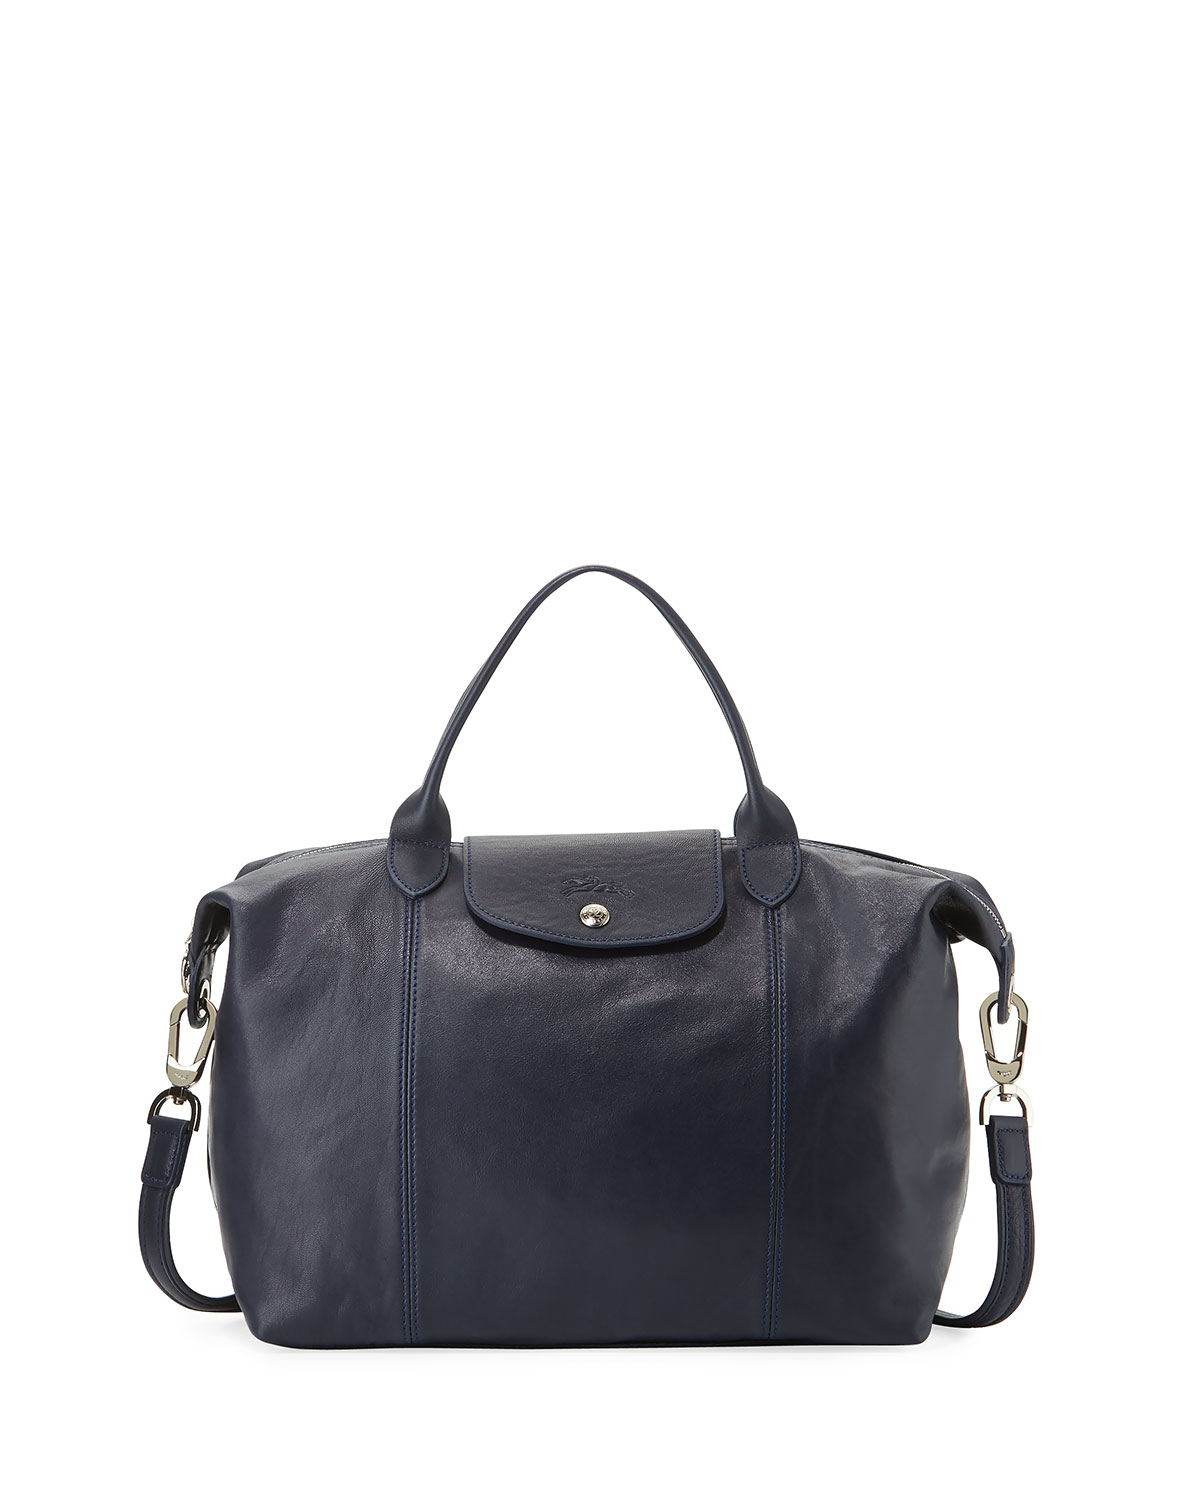 a62deae5be Longchamp Le Pliage Cuir Handbag with Strap, Navy | Neiman Marcus